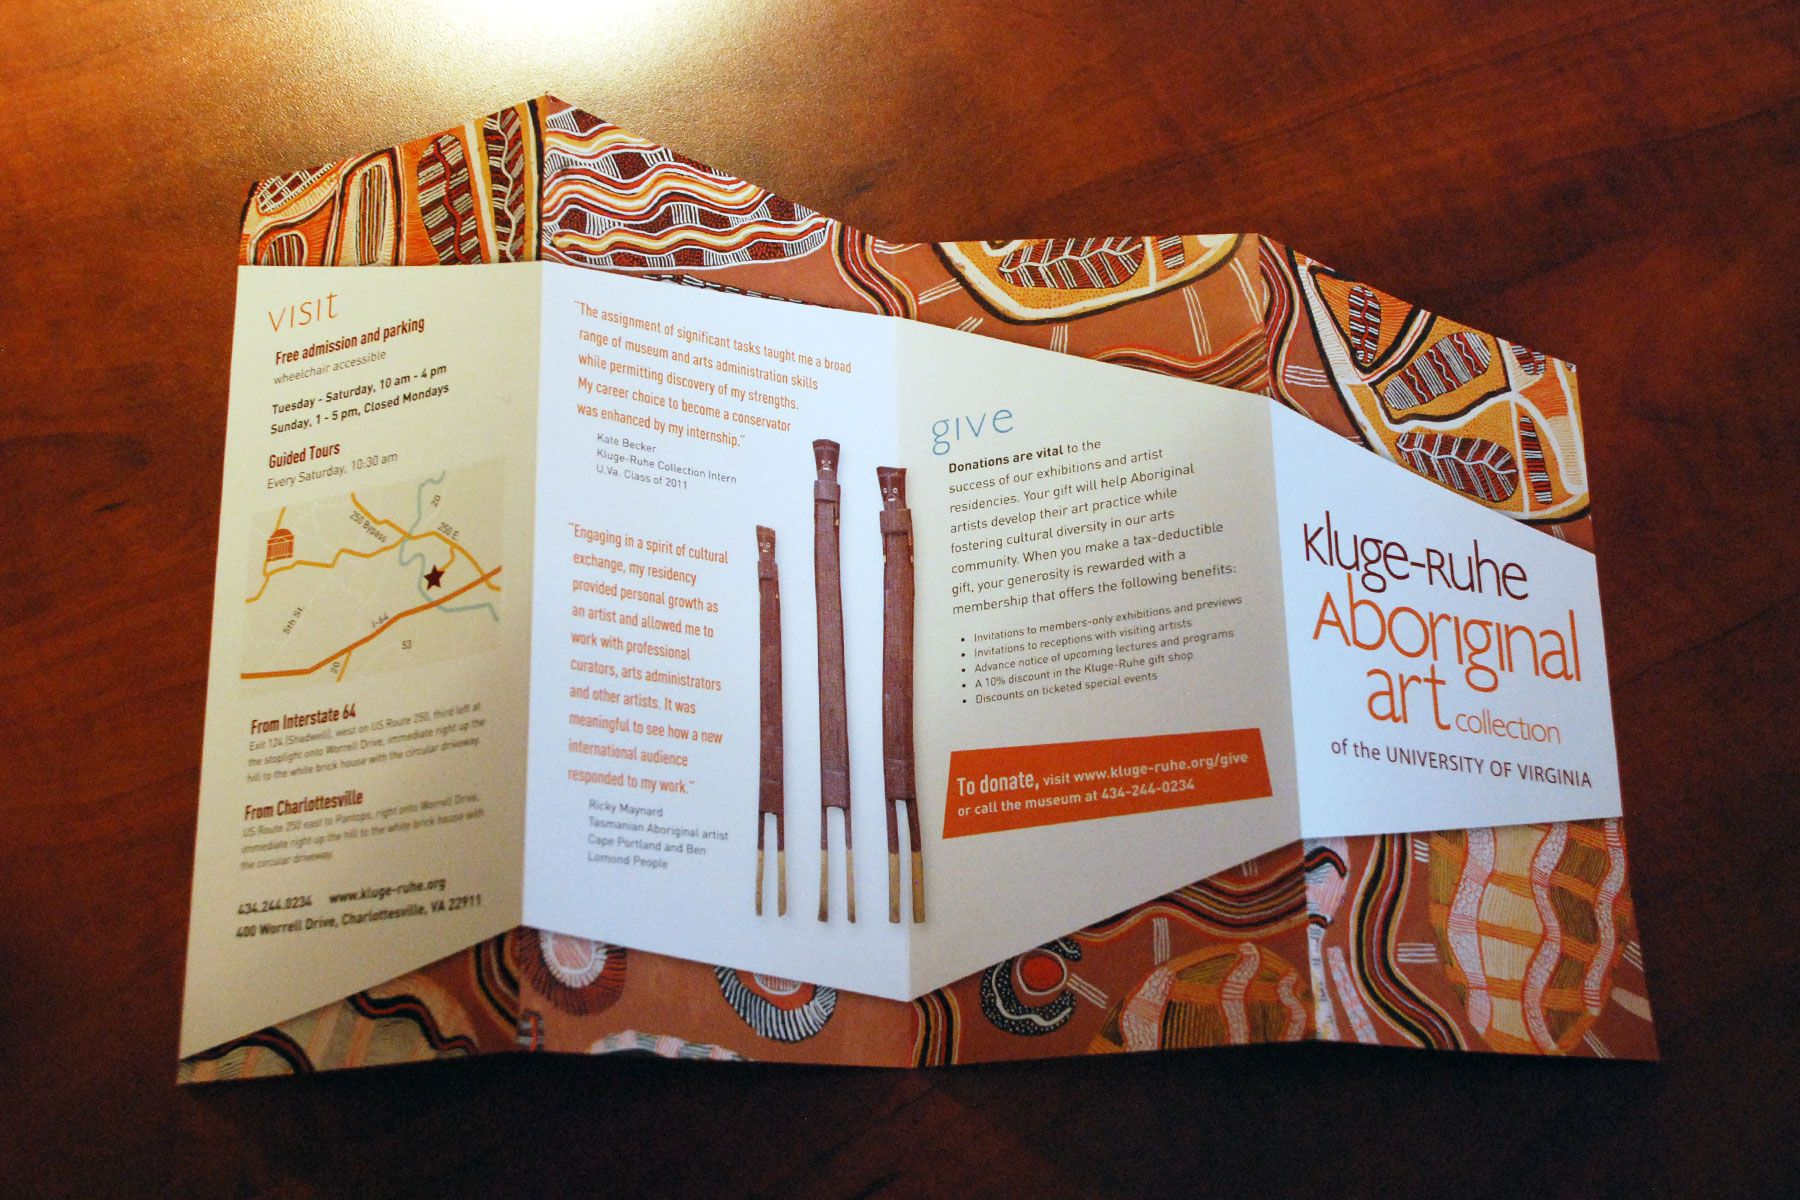 Kluge-ruhe Aboriginal Art Museum Brochure - Birch Studio Gm Graphic Design